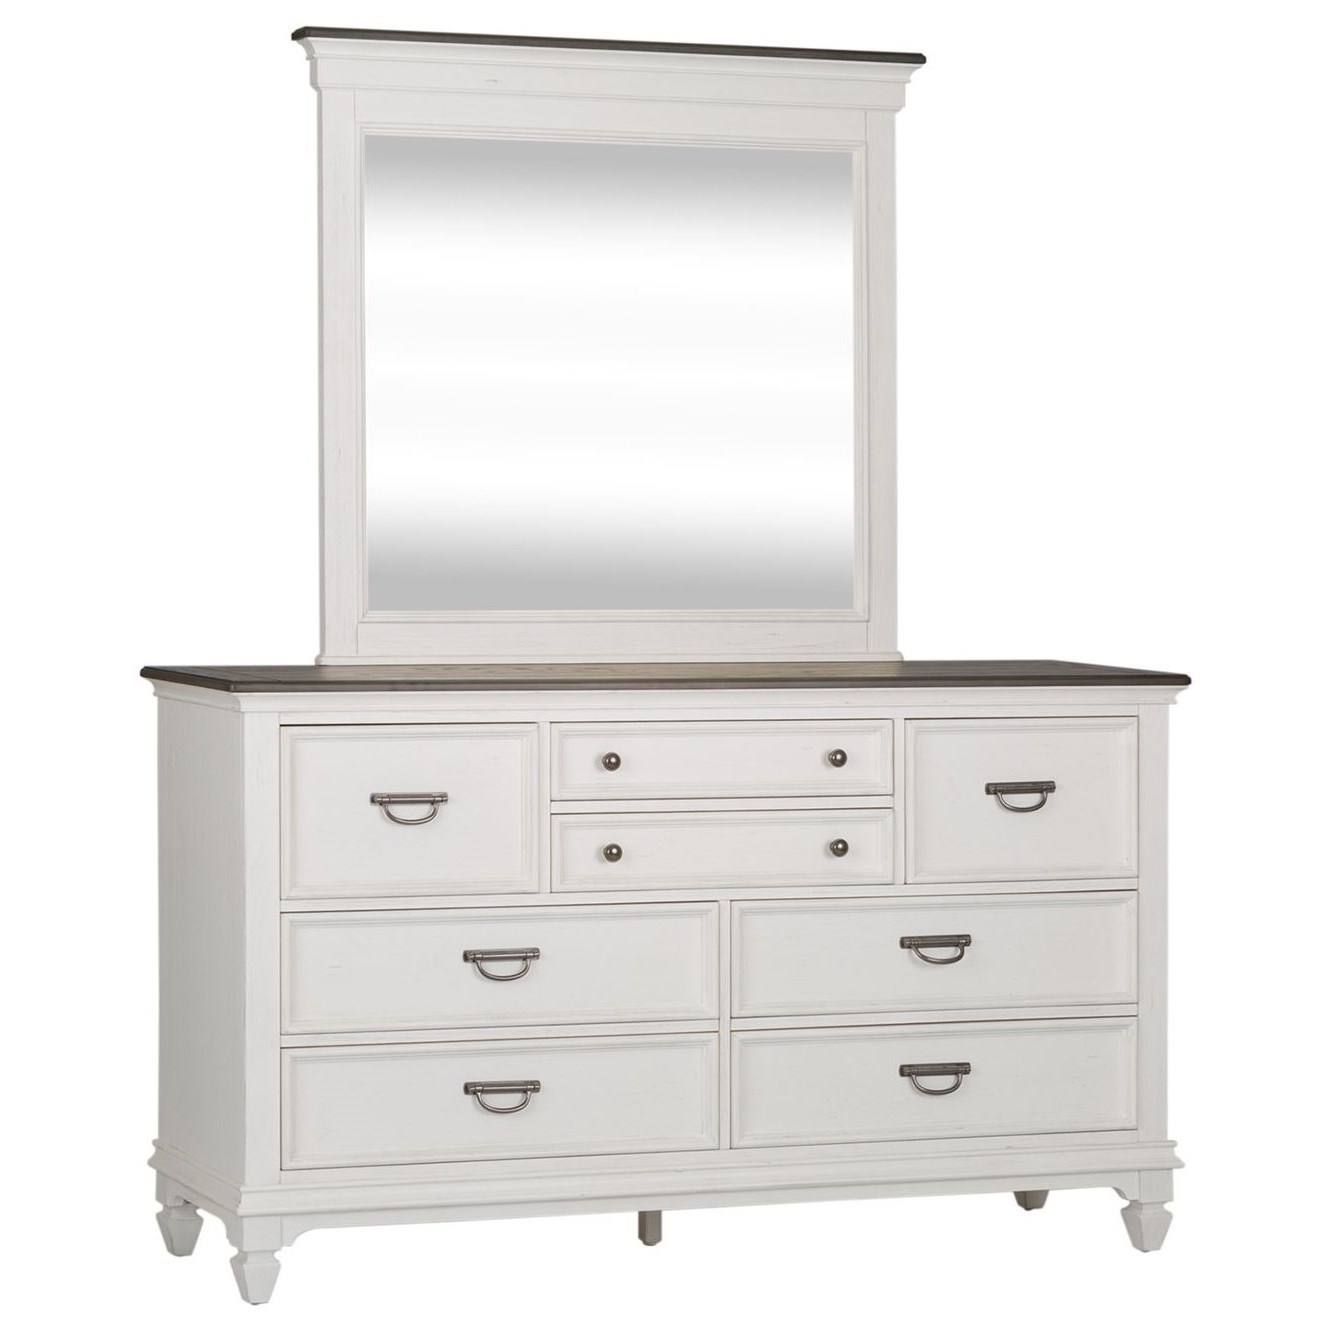 Allyson Park Dresser & Mirror  by Liberty Furniture at Prime Brothers Furniture